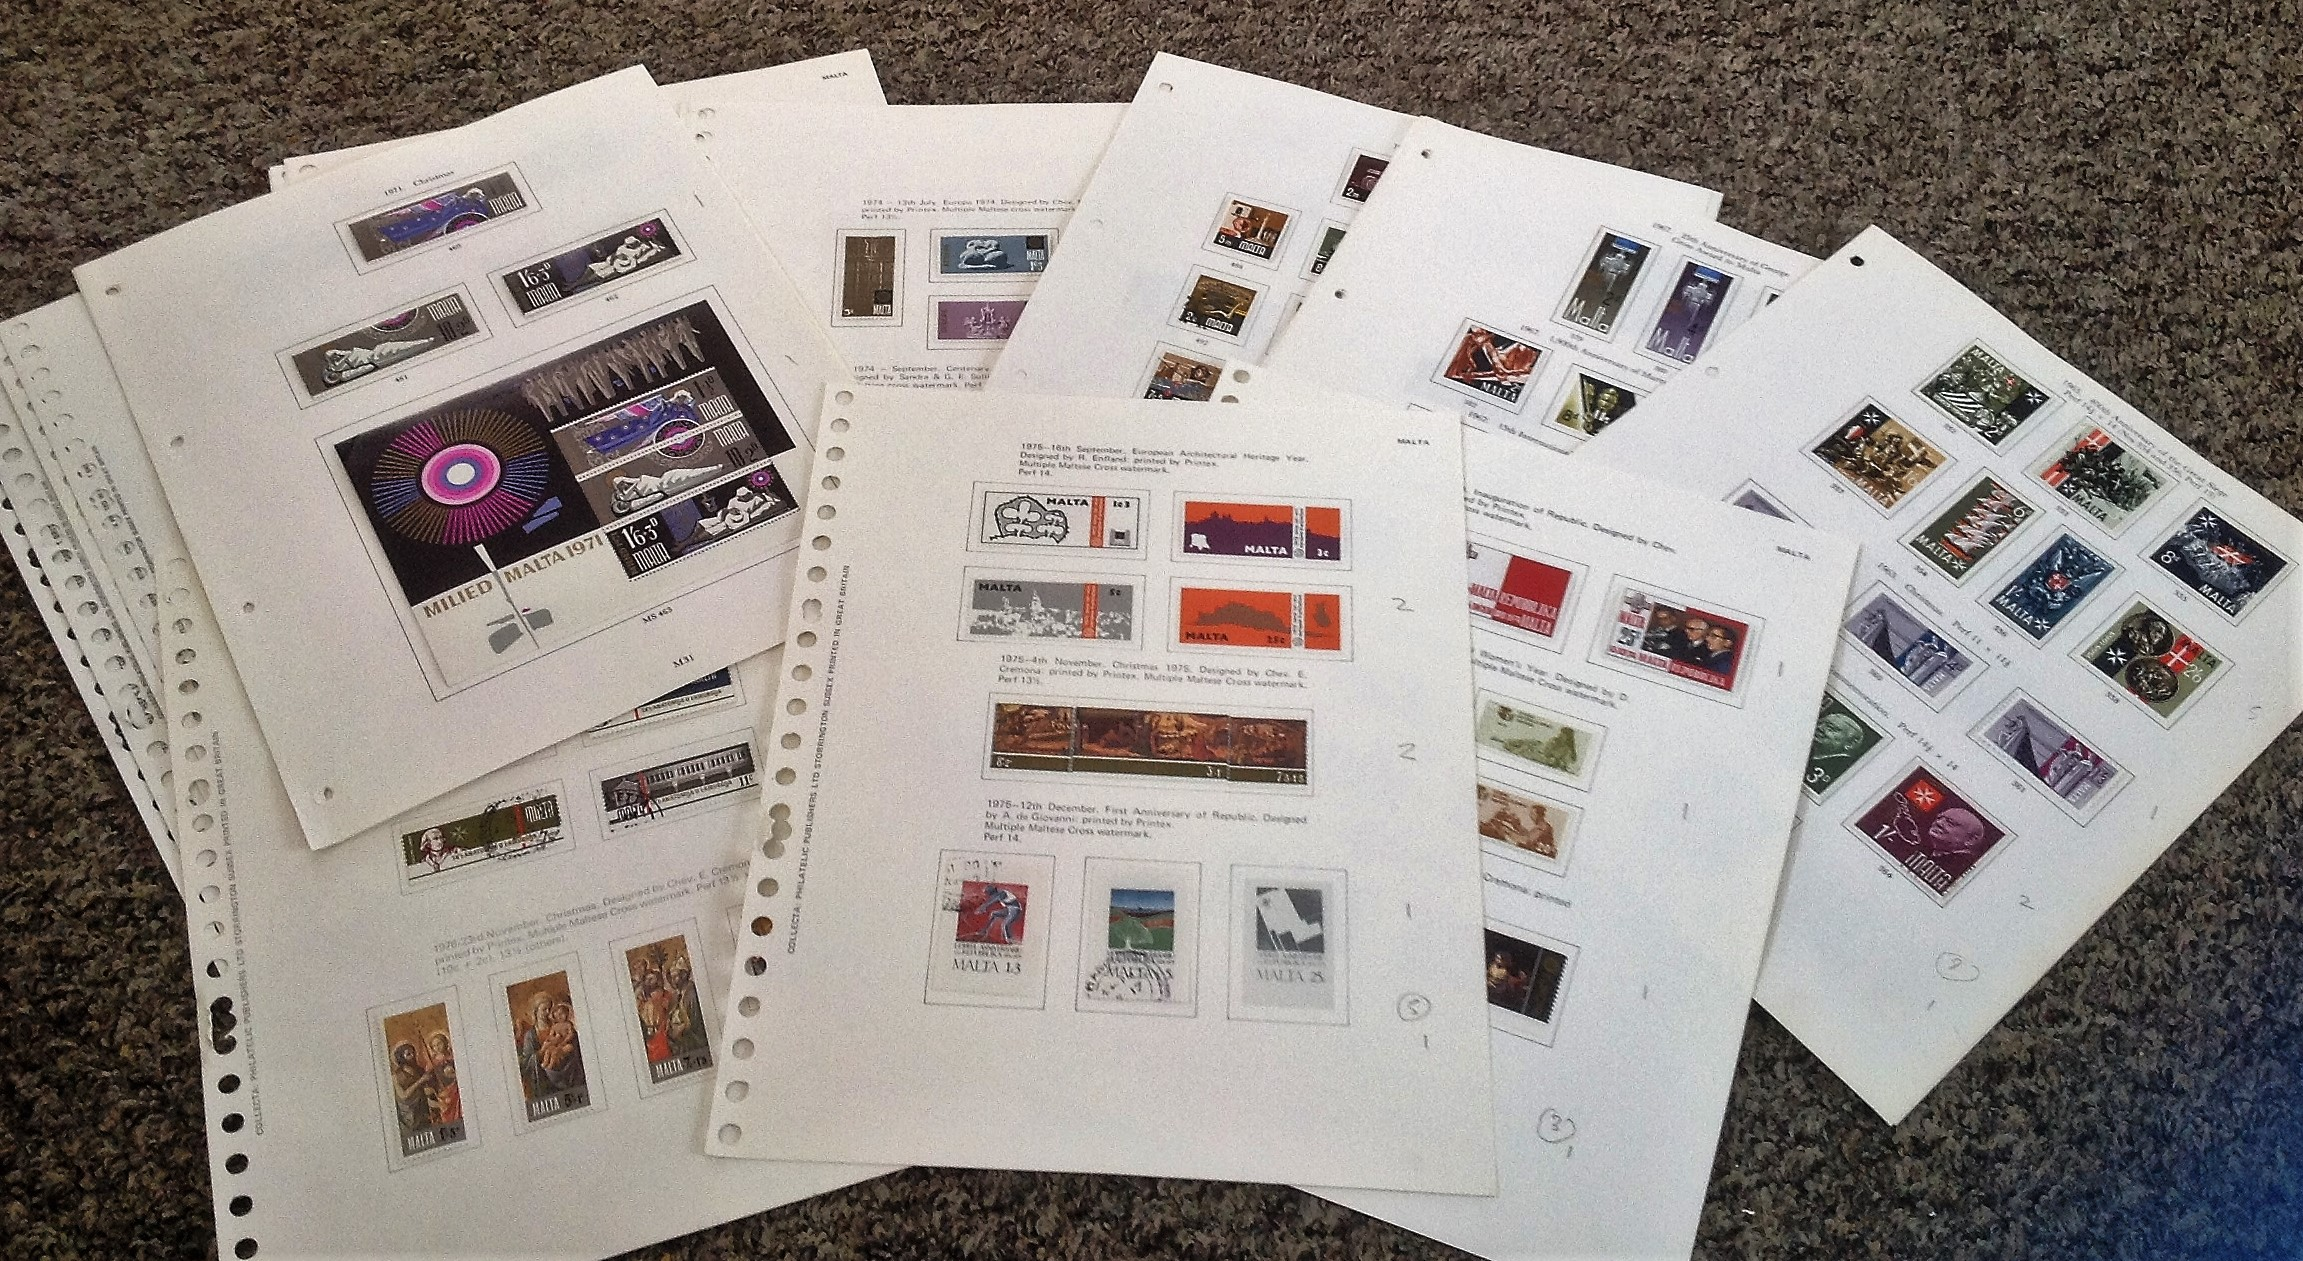 Malta Stamp collection 35 loose album pages dating 1965 to 1980. Good condition. We combine